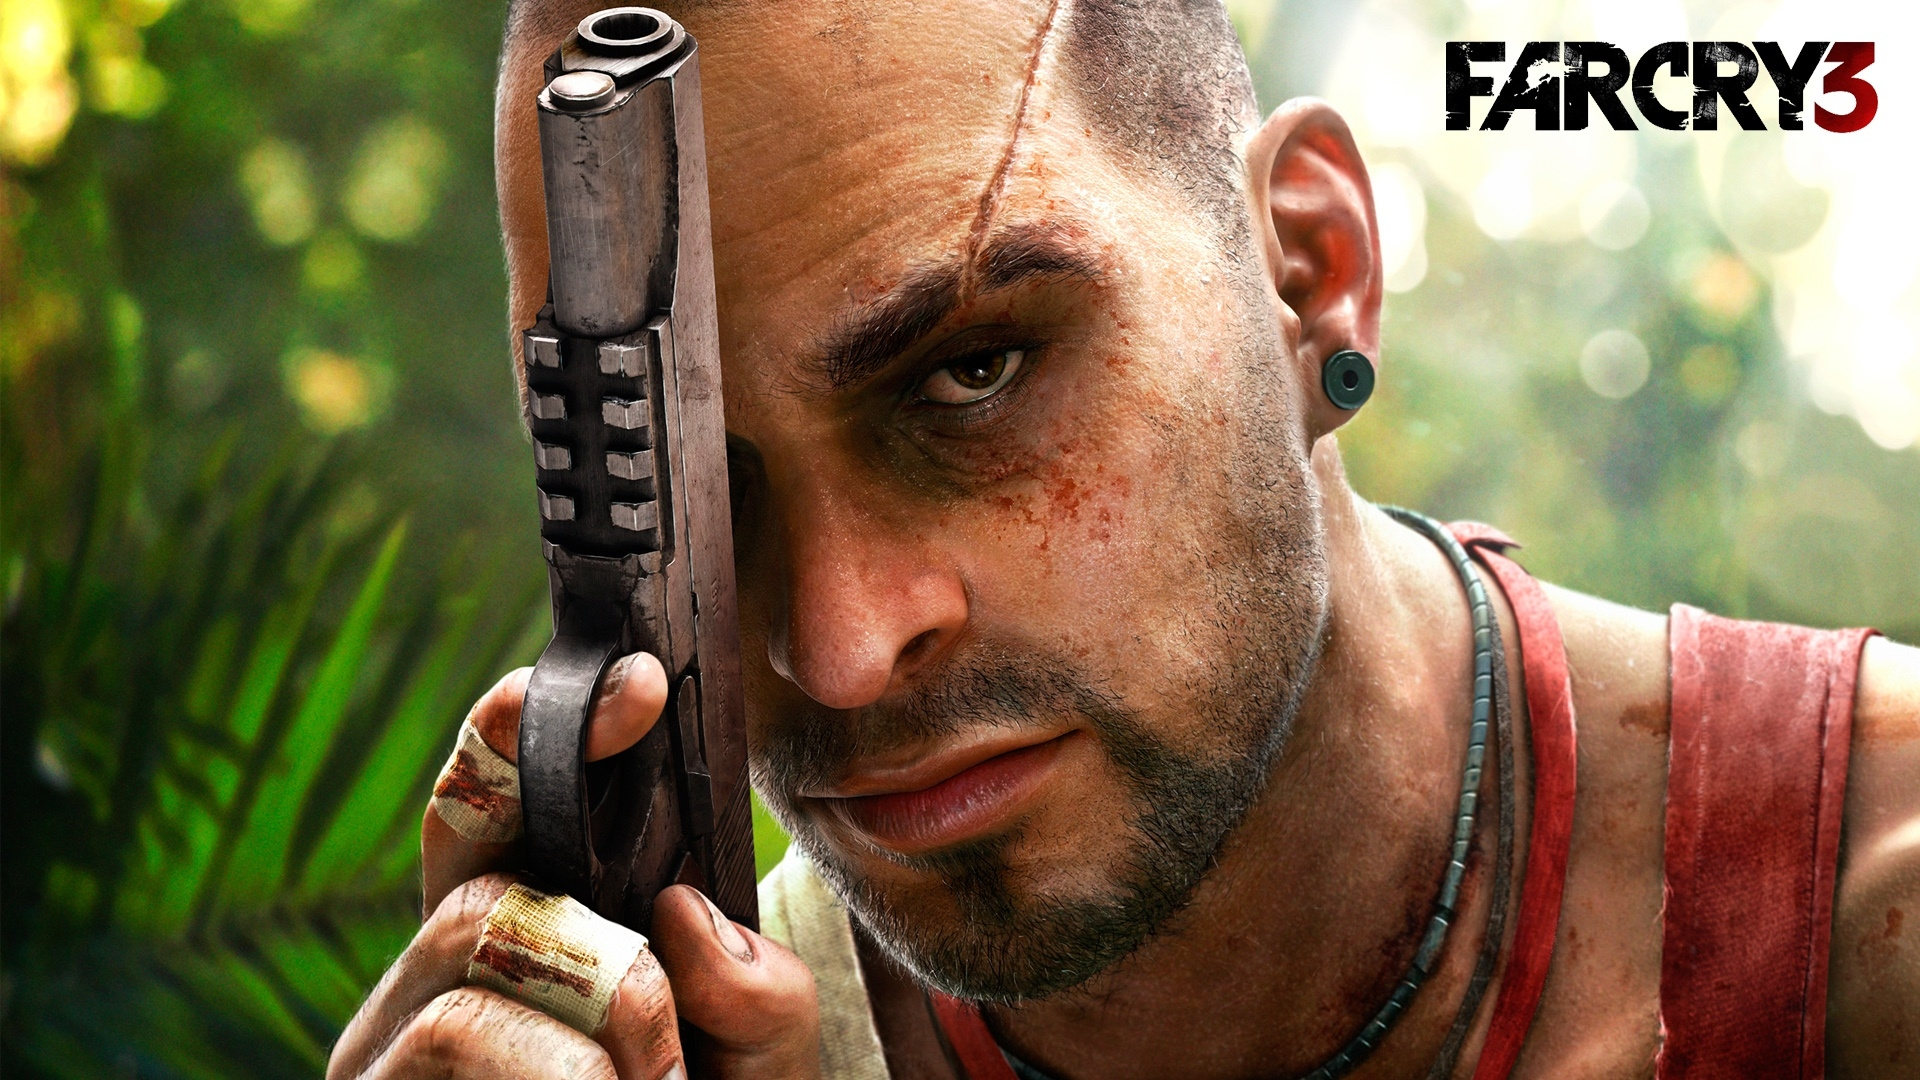 far-cry-3-game-wallpaper-for-1920x1080-hdtv-1080p-15-653+1_20130111134717.jpg